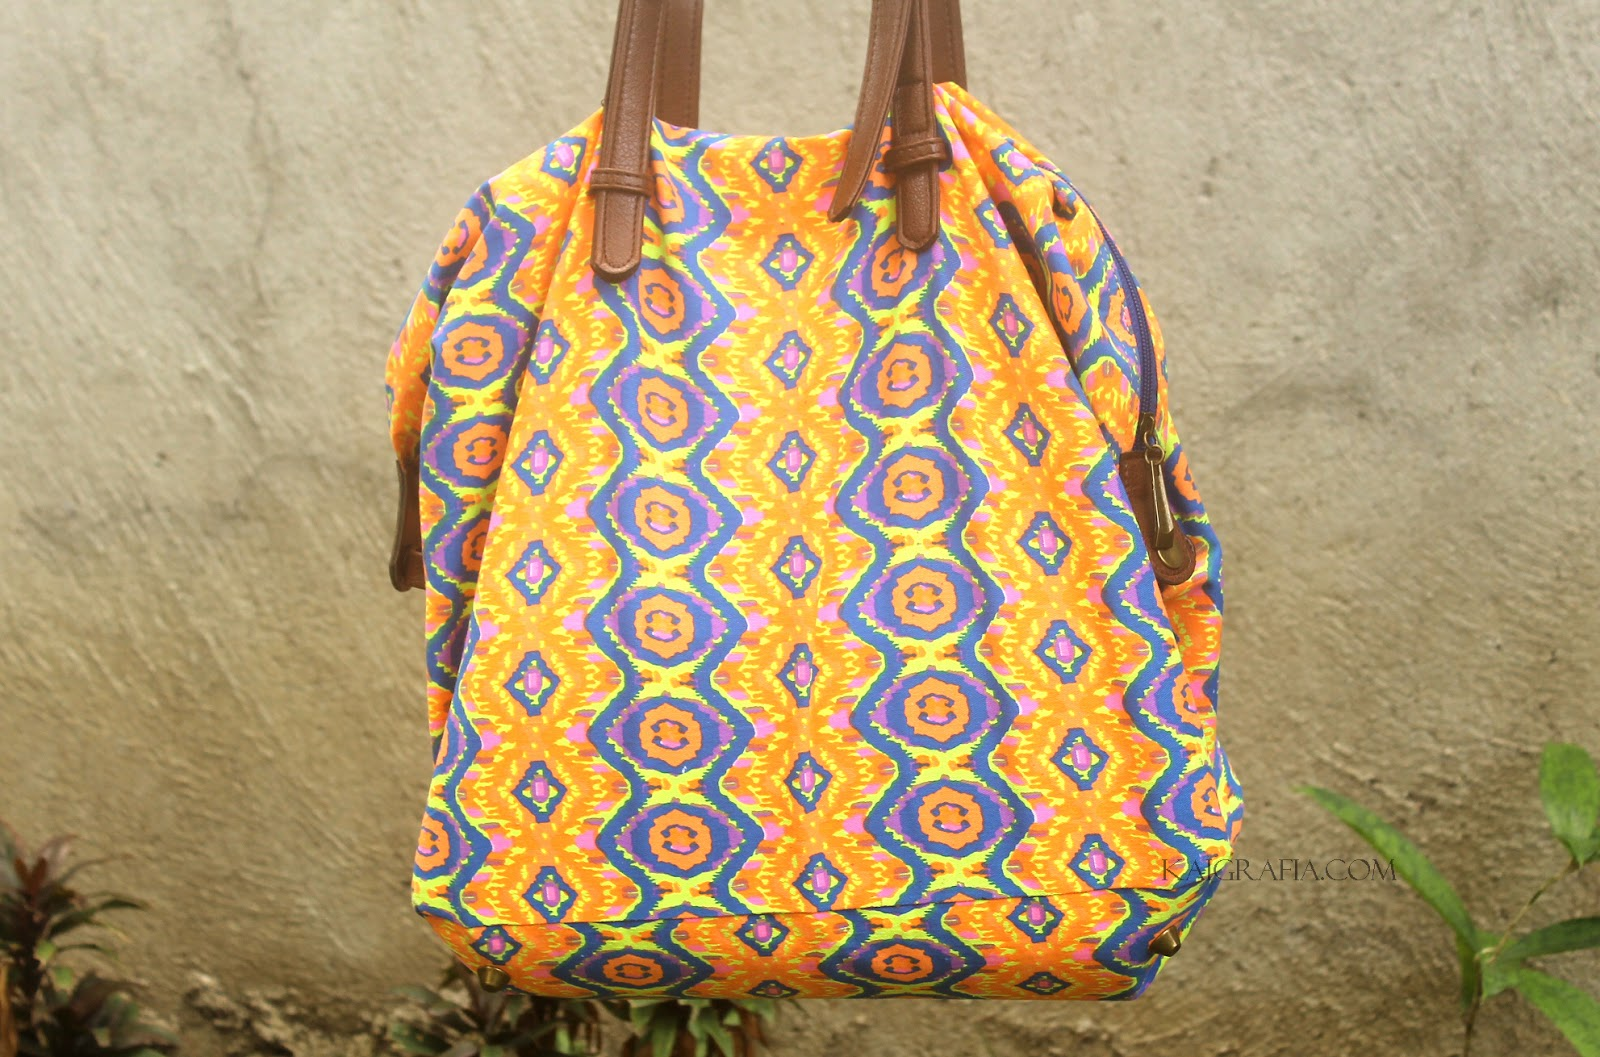 neon tote bags for women